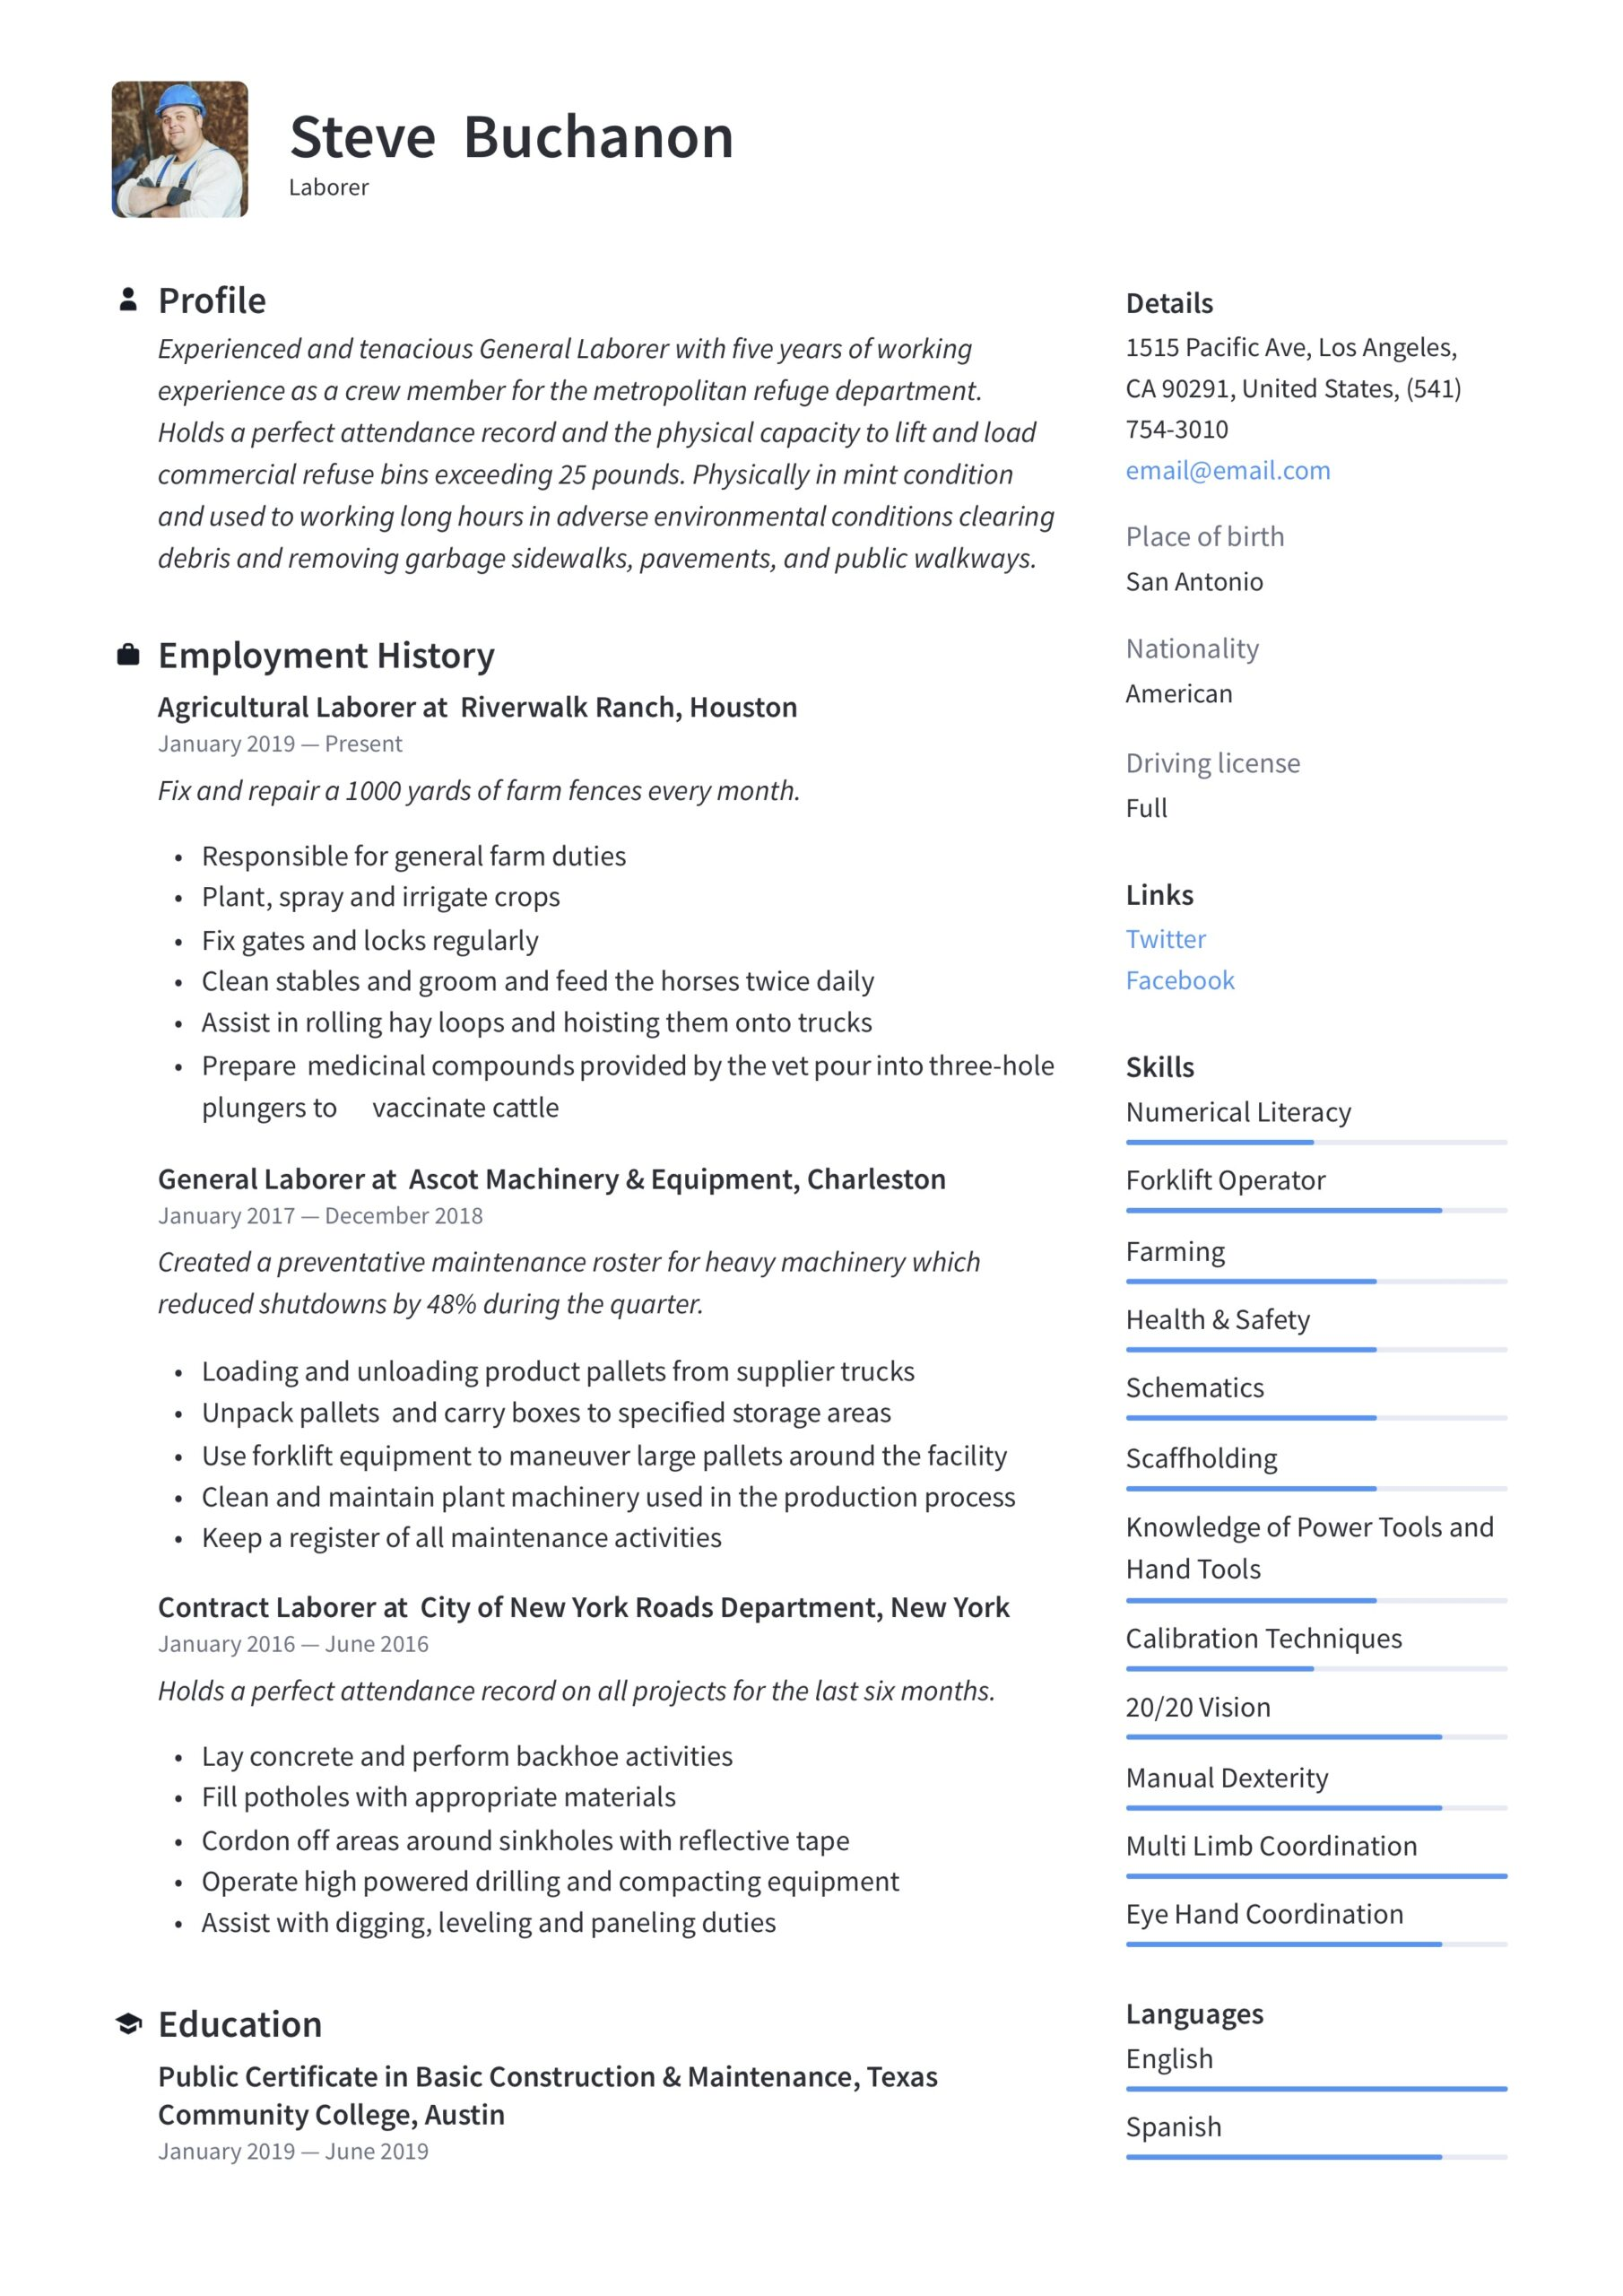 general laborer resume writing guide free templates labor summary example and delivery Resume General Labor Resume Summary Example